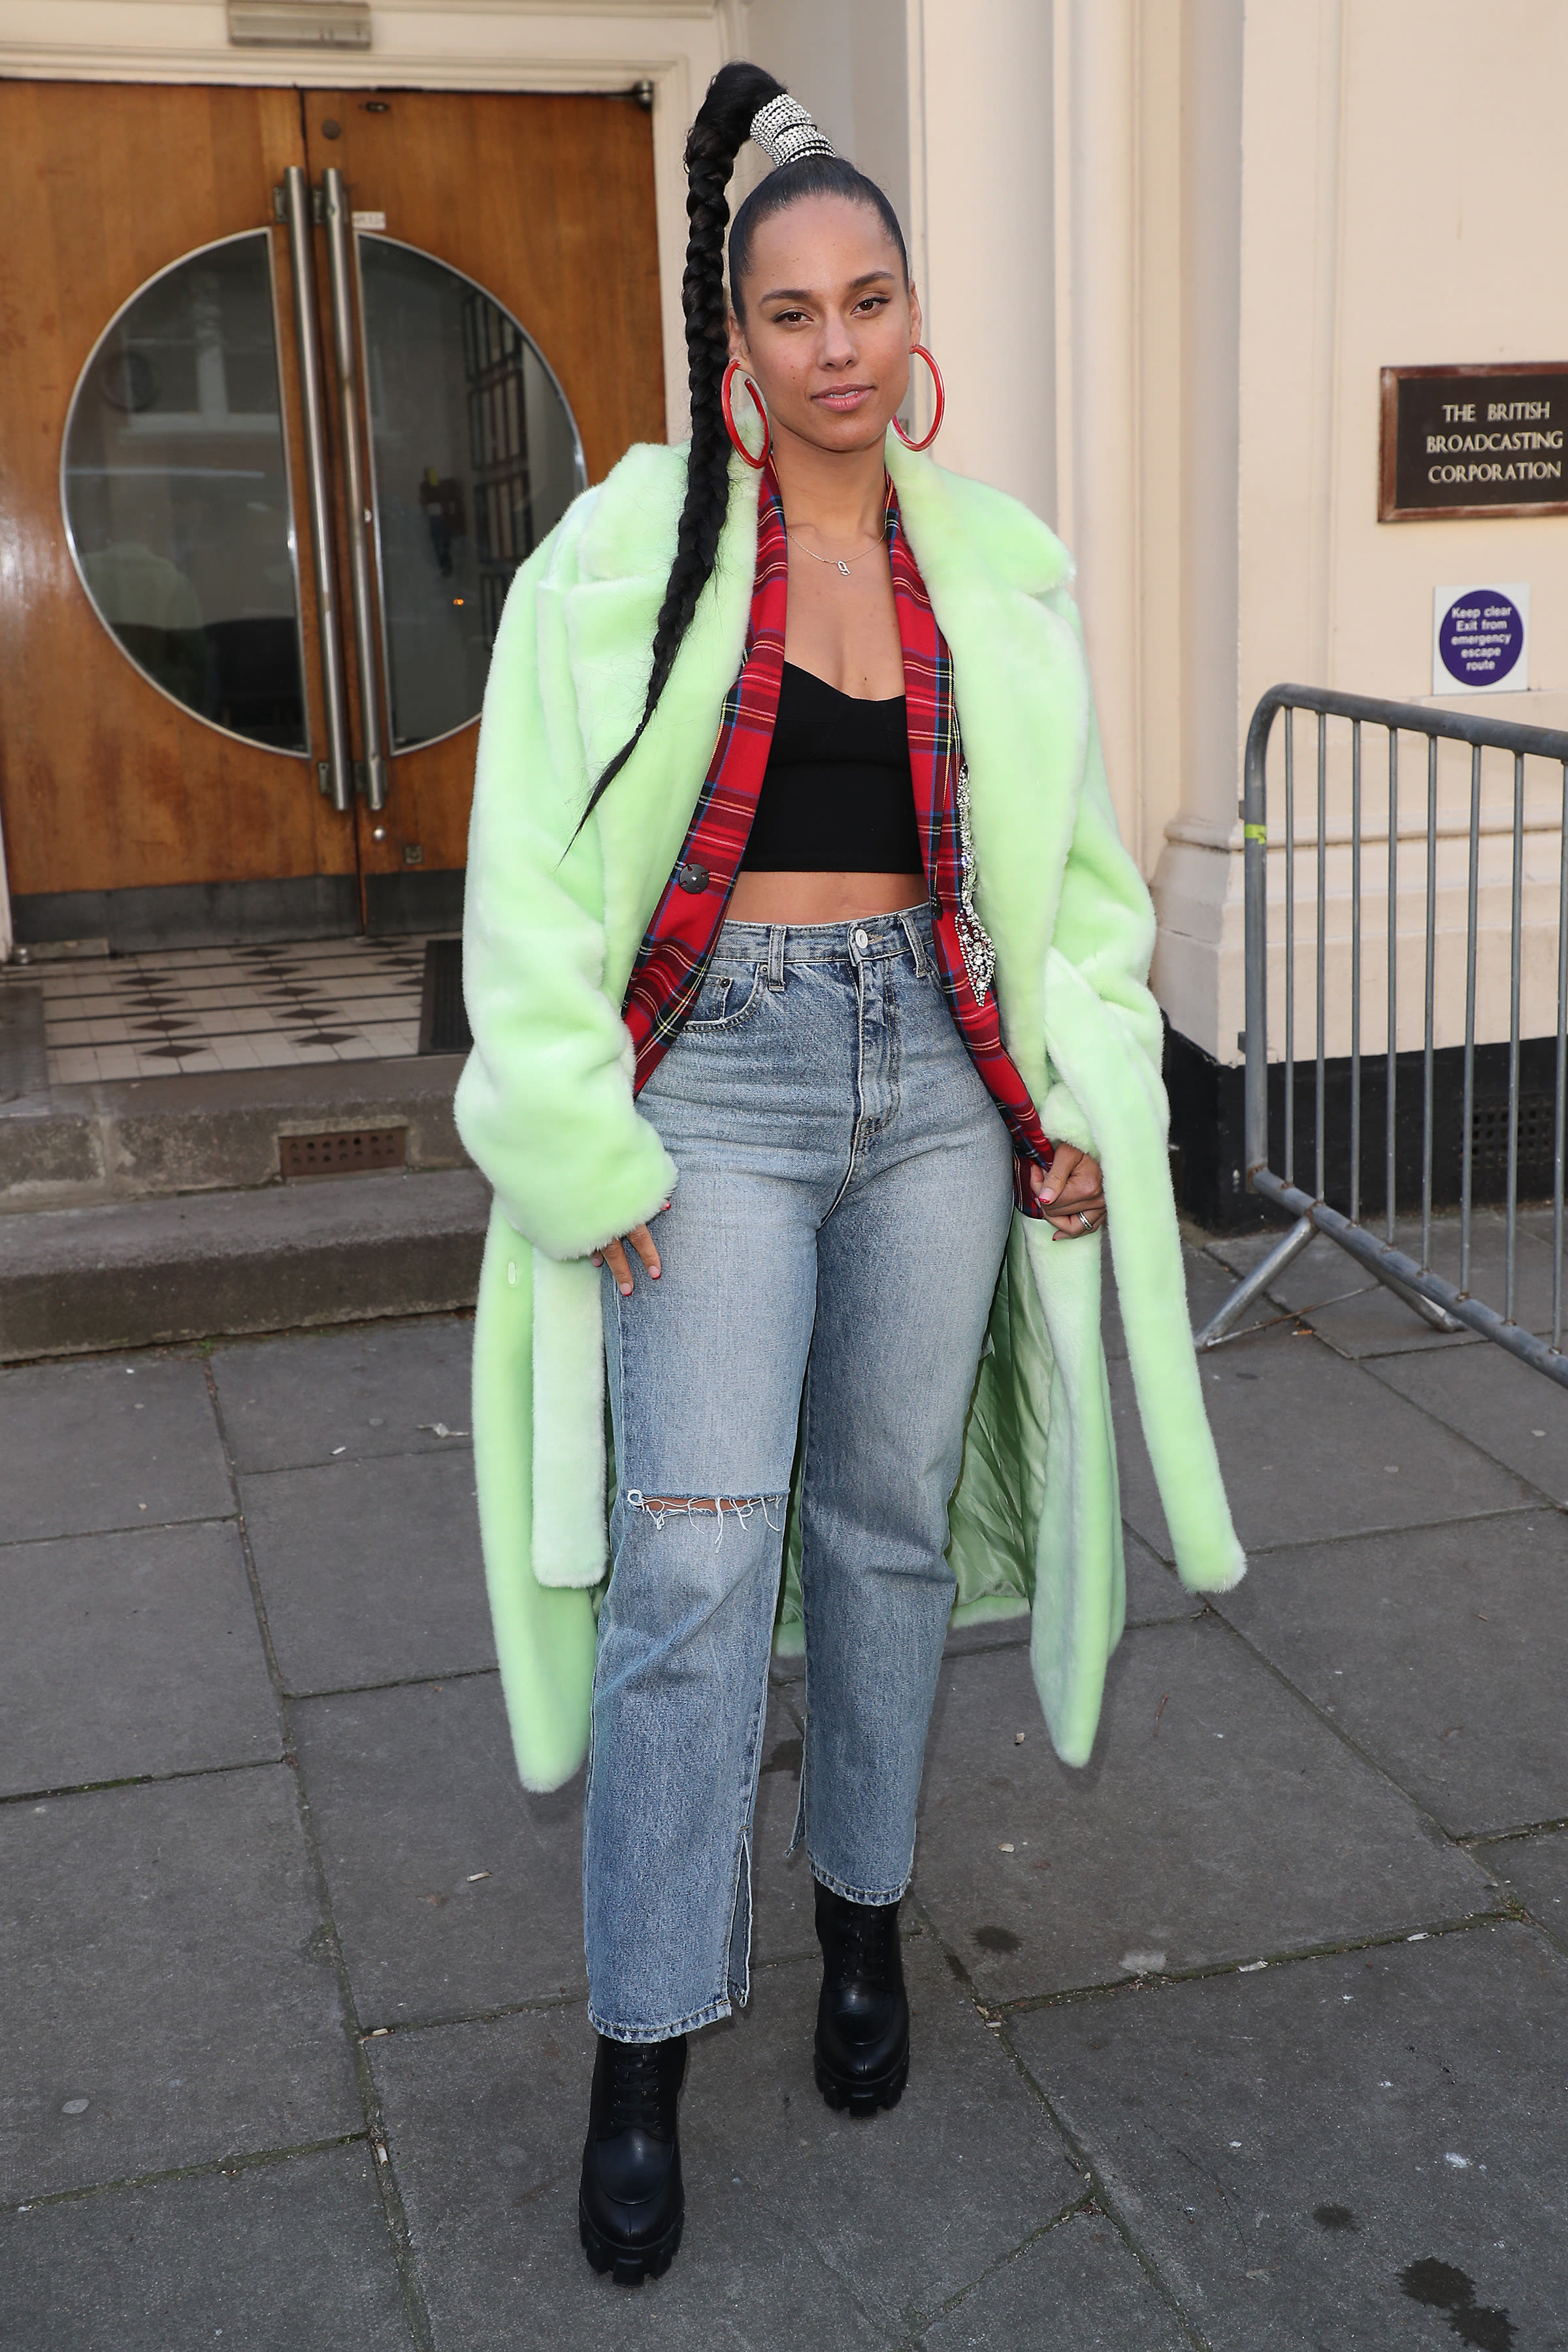 Alicia wears a large, furry coat with a plaid patterned blazer underneath and a crop top. She wears straight leg jeans and her hair in a high braid.